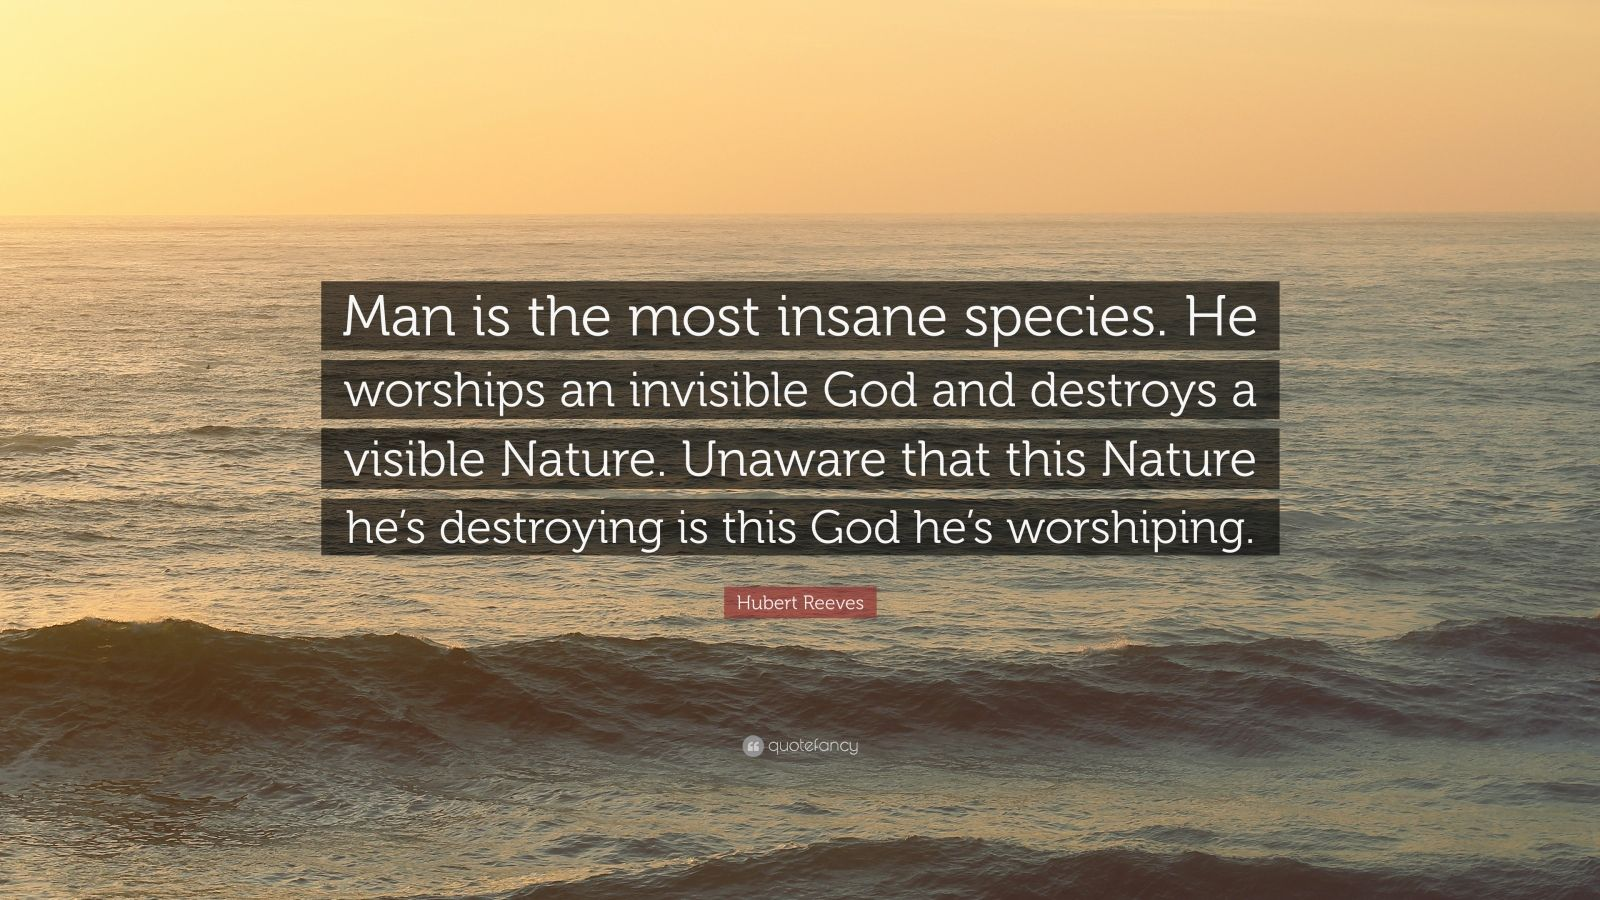 John Muir Quotes Wallpaper Hubert Reeves Quote Man Is The Most Insane Species He